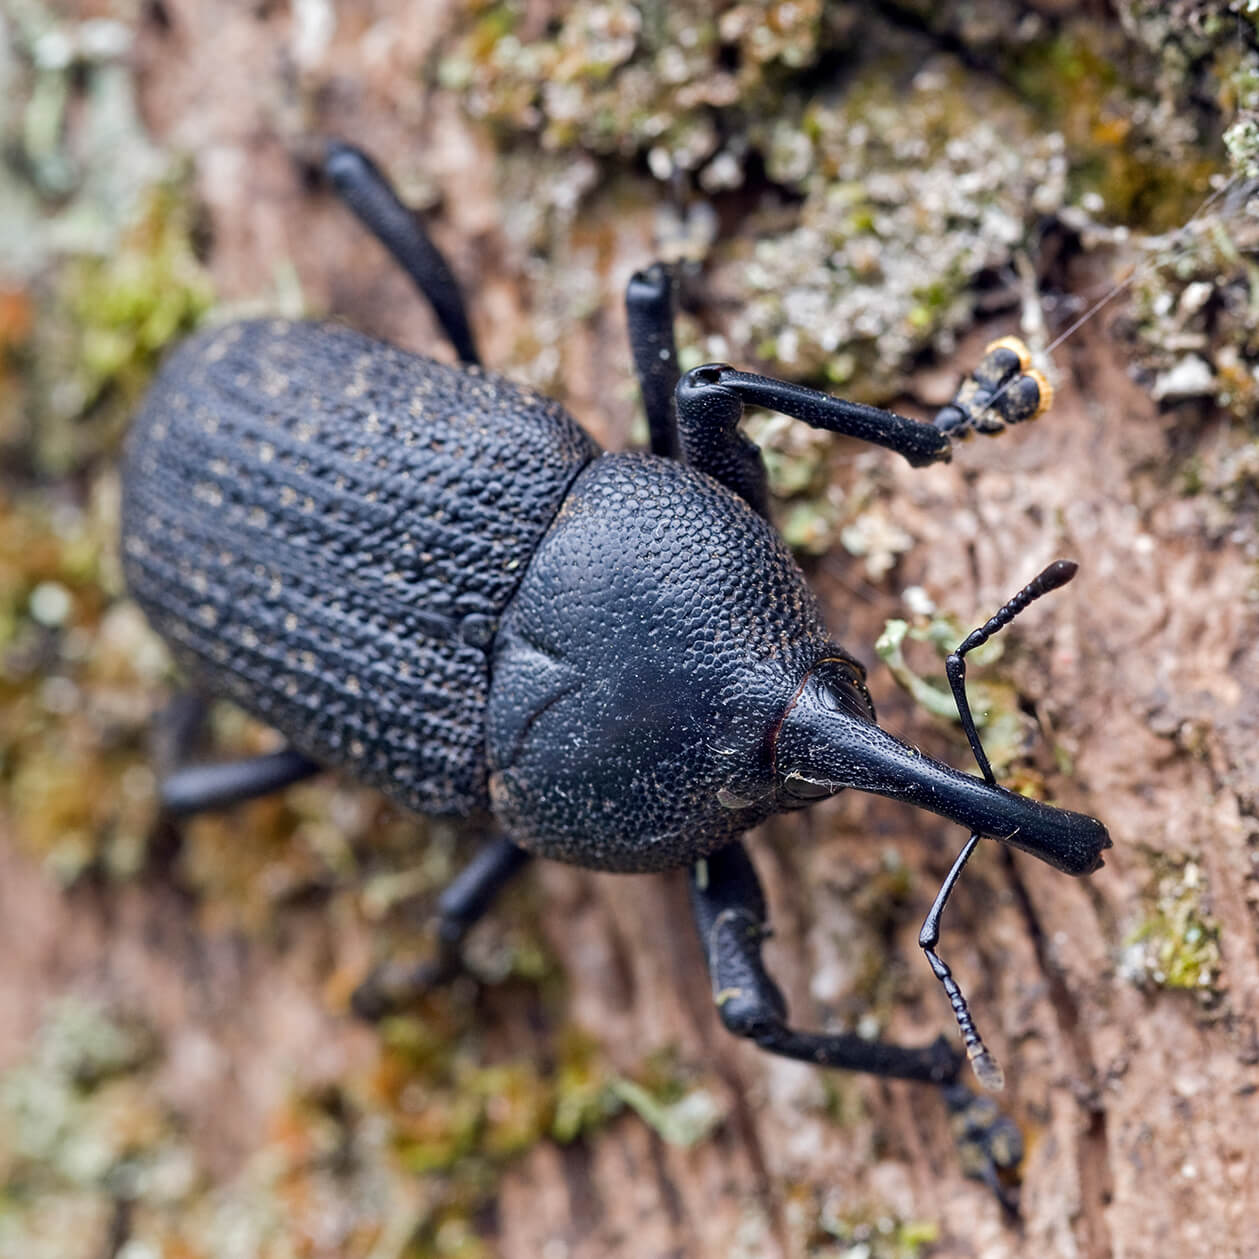 Palm Weevils